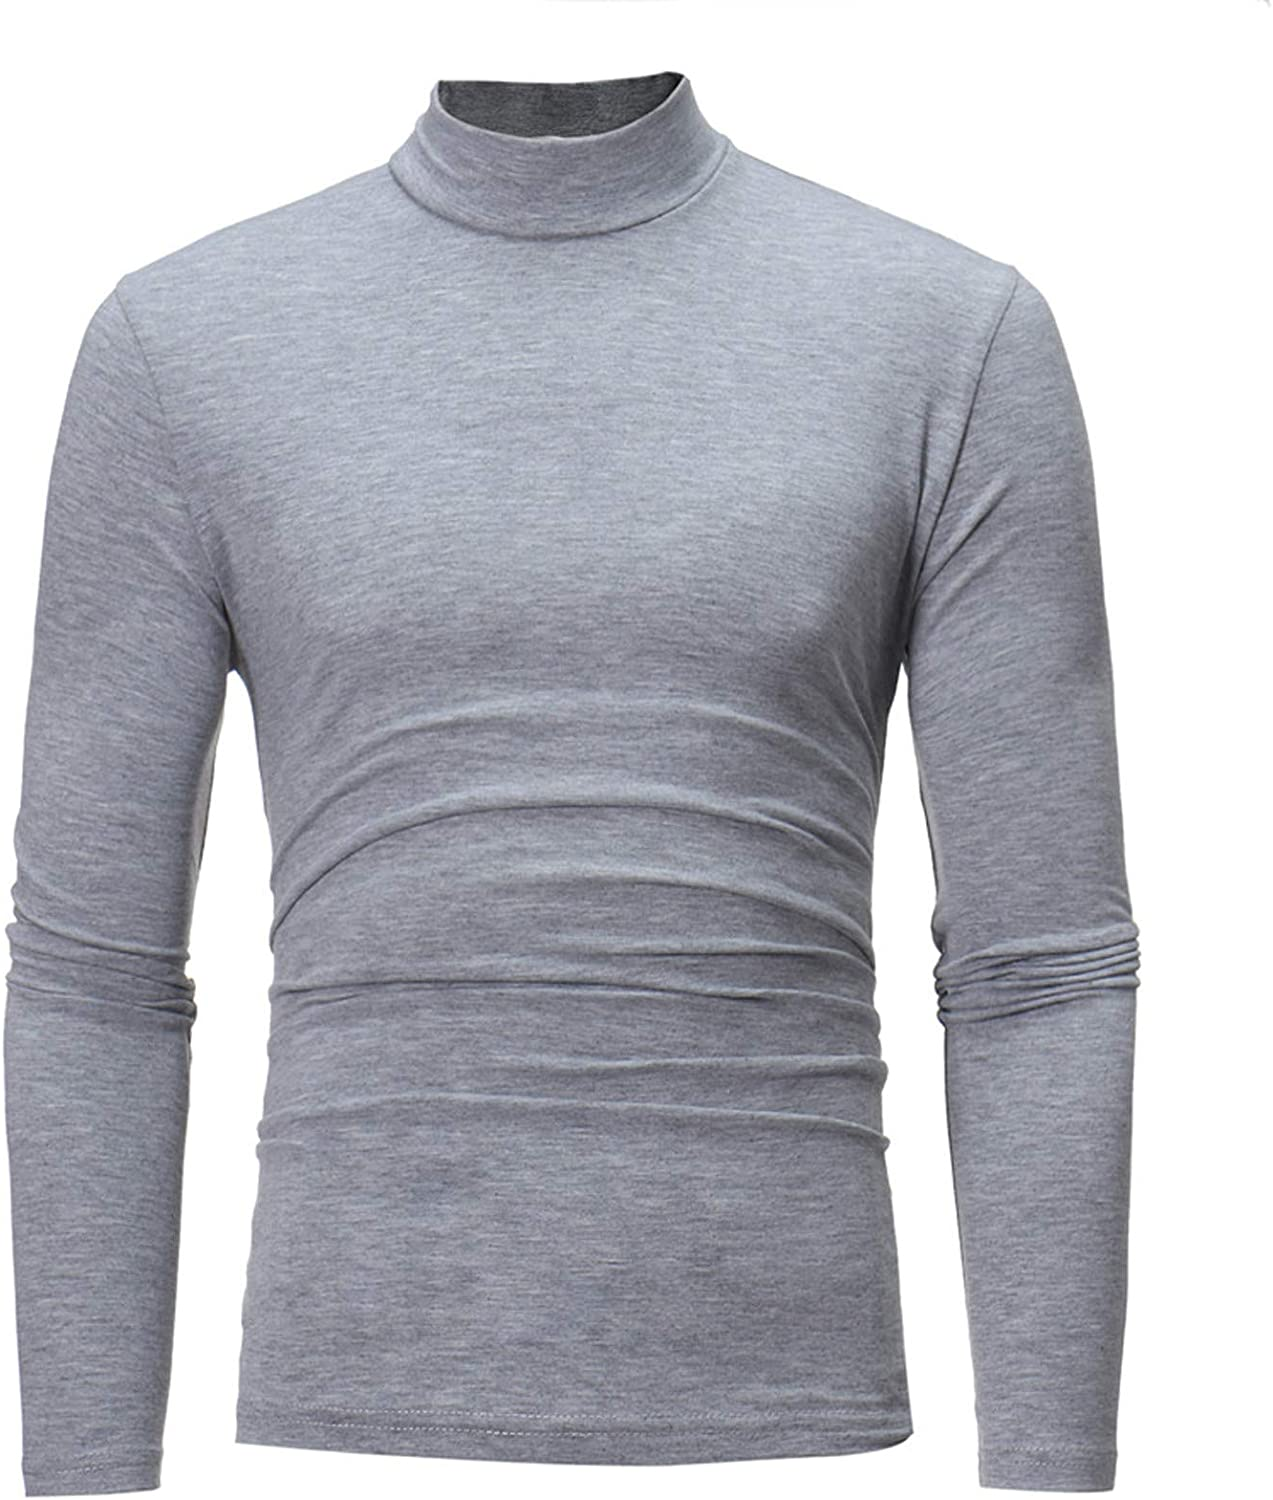 Men's Thermal Shirt Top with Neck Base Layer Sweaters Pullover Sweatshirt for Men